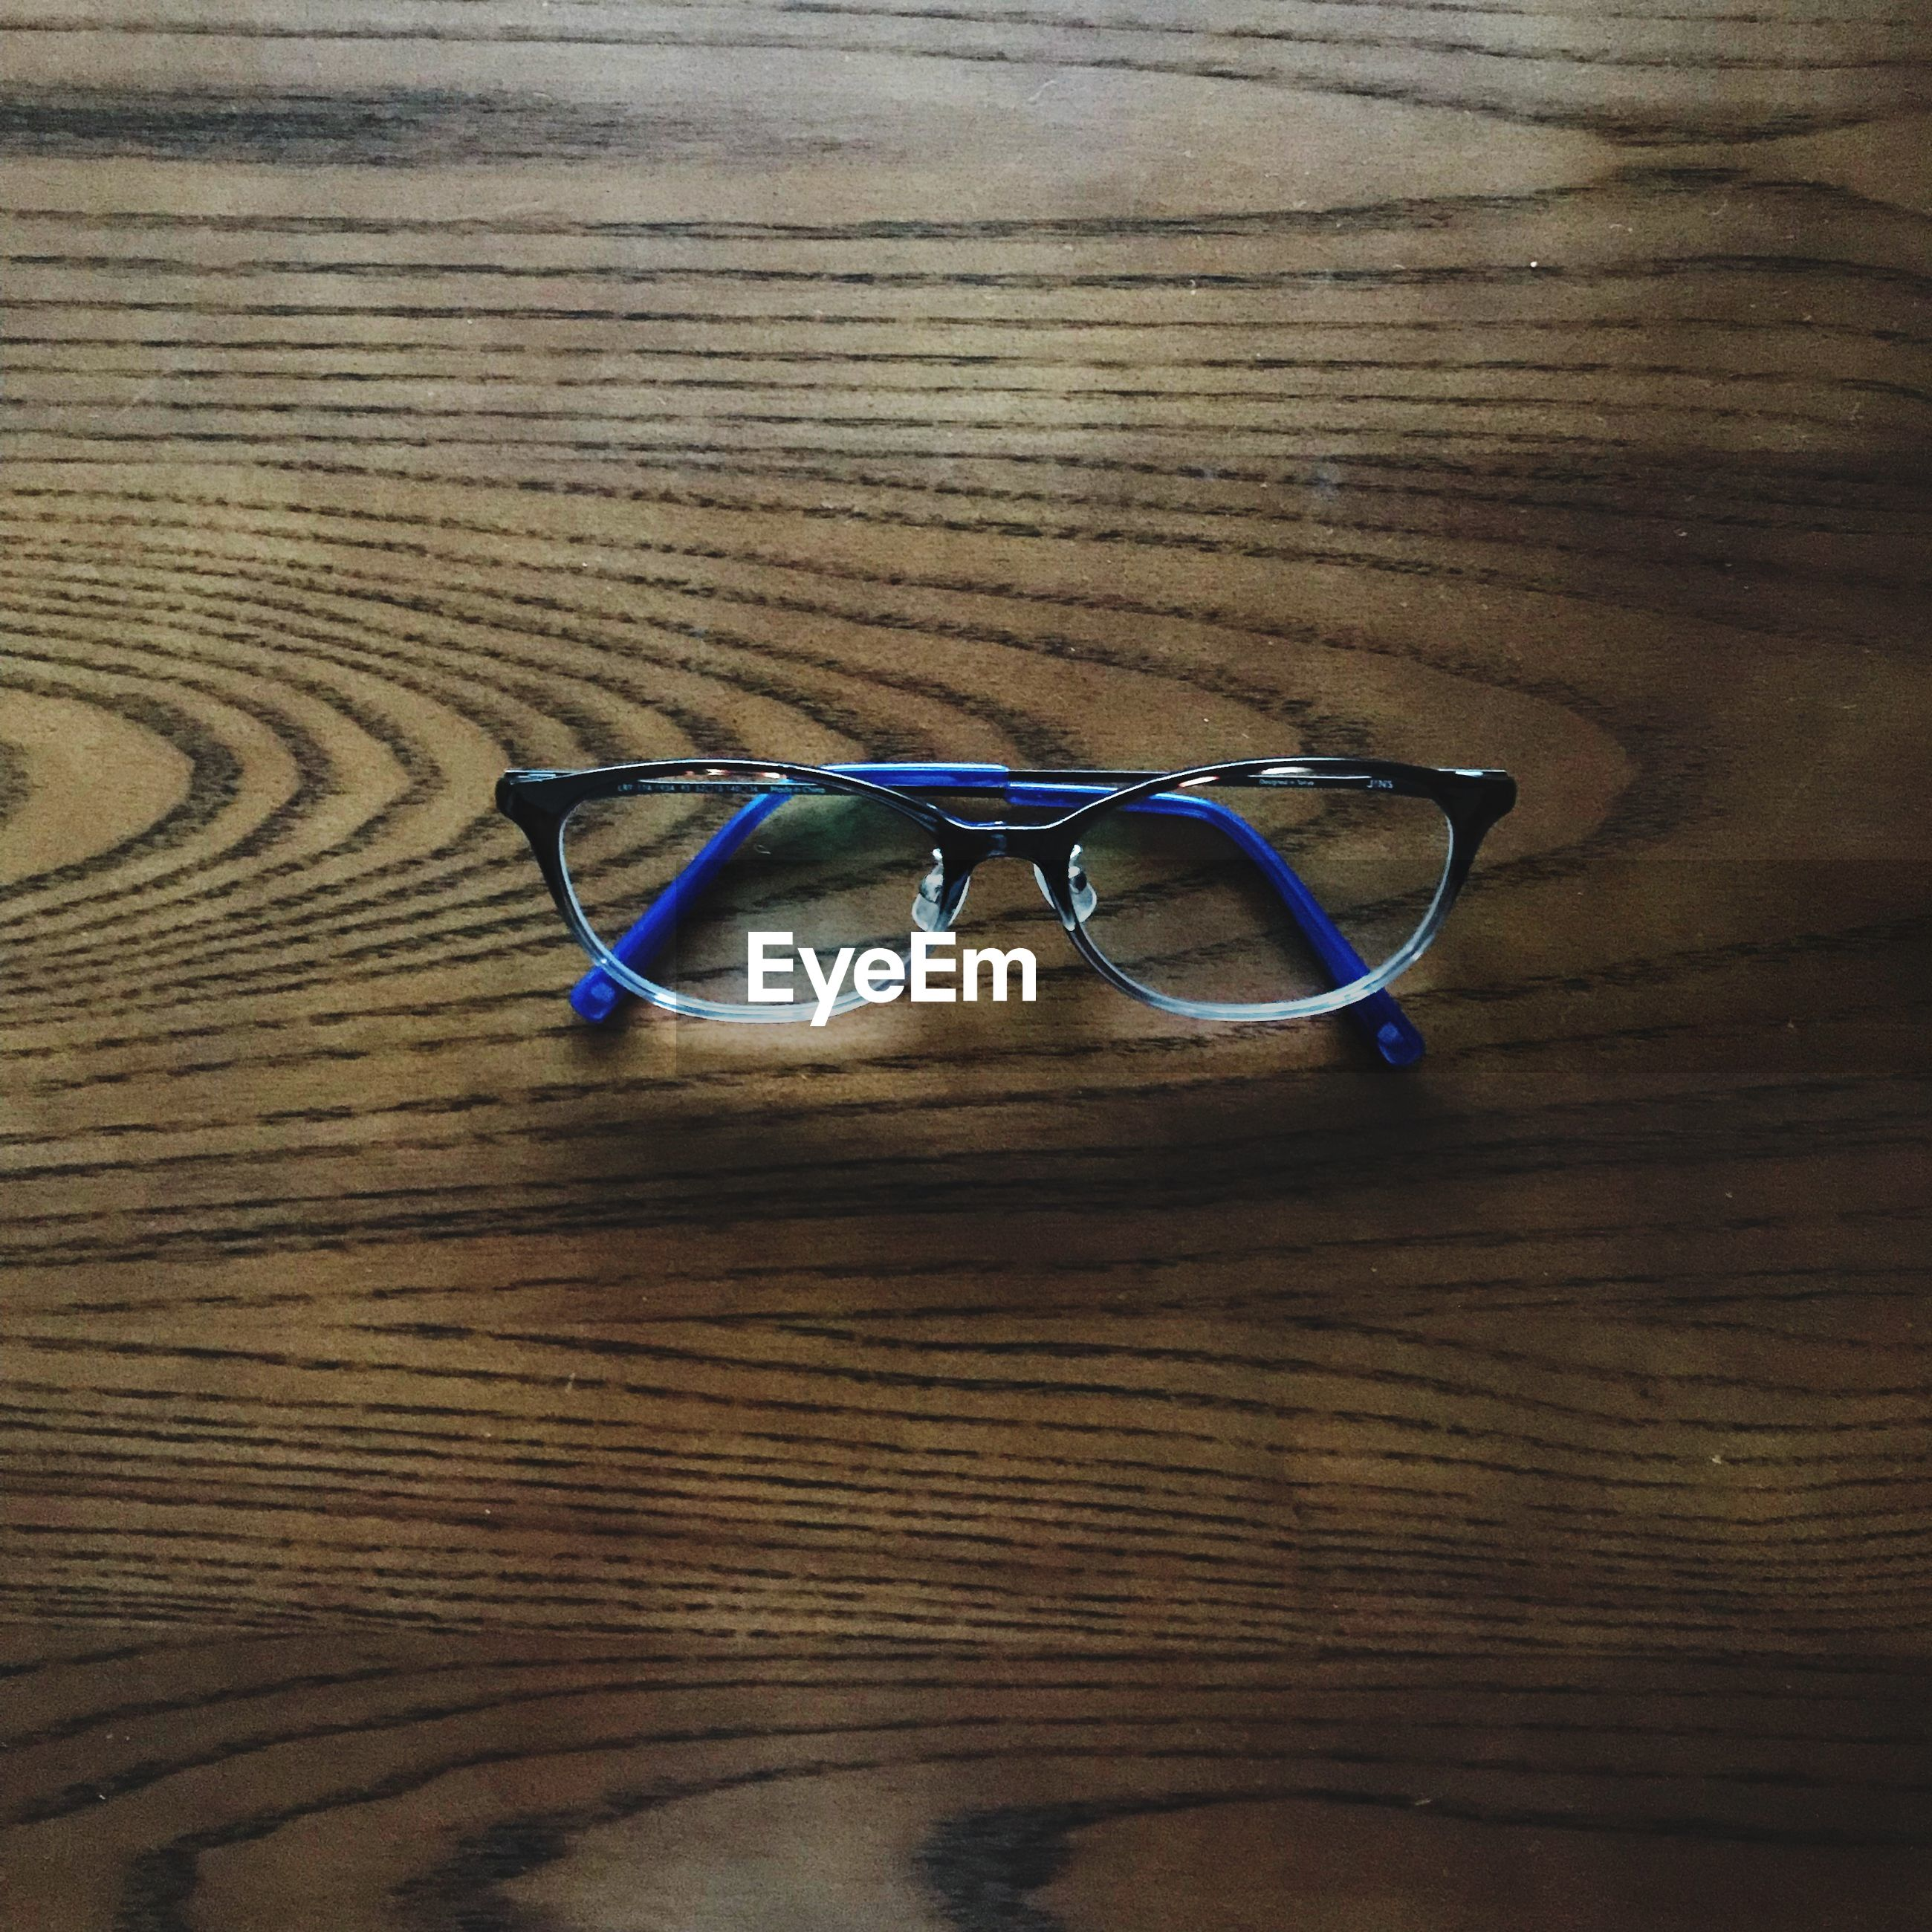 glasses, table, still life, eyeglasses, wood - material, indoors, close-up, no people, personal accessory, single object, high angle view, eyesight, wood, transparent, two objects, sunglasses, eyewear, vision, brown, flooring, wood grain